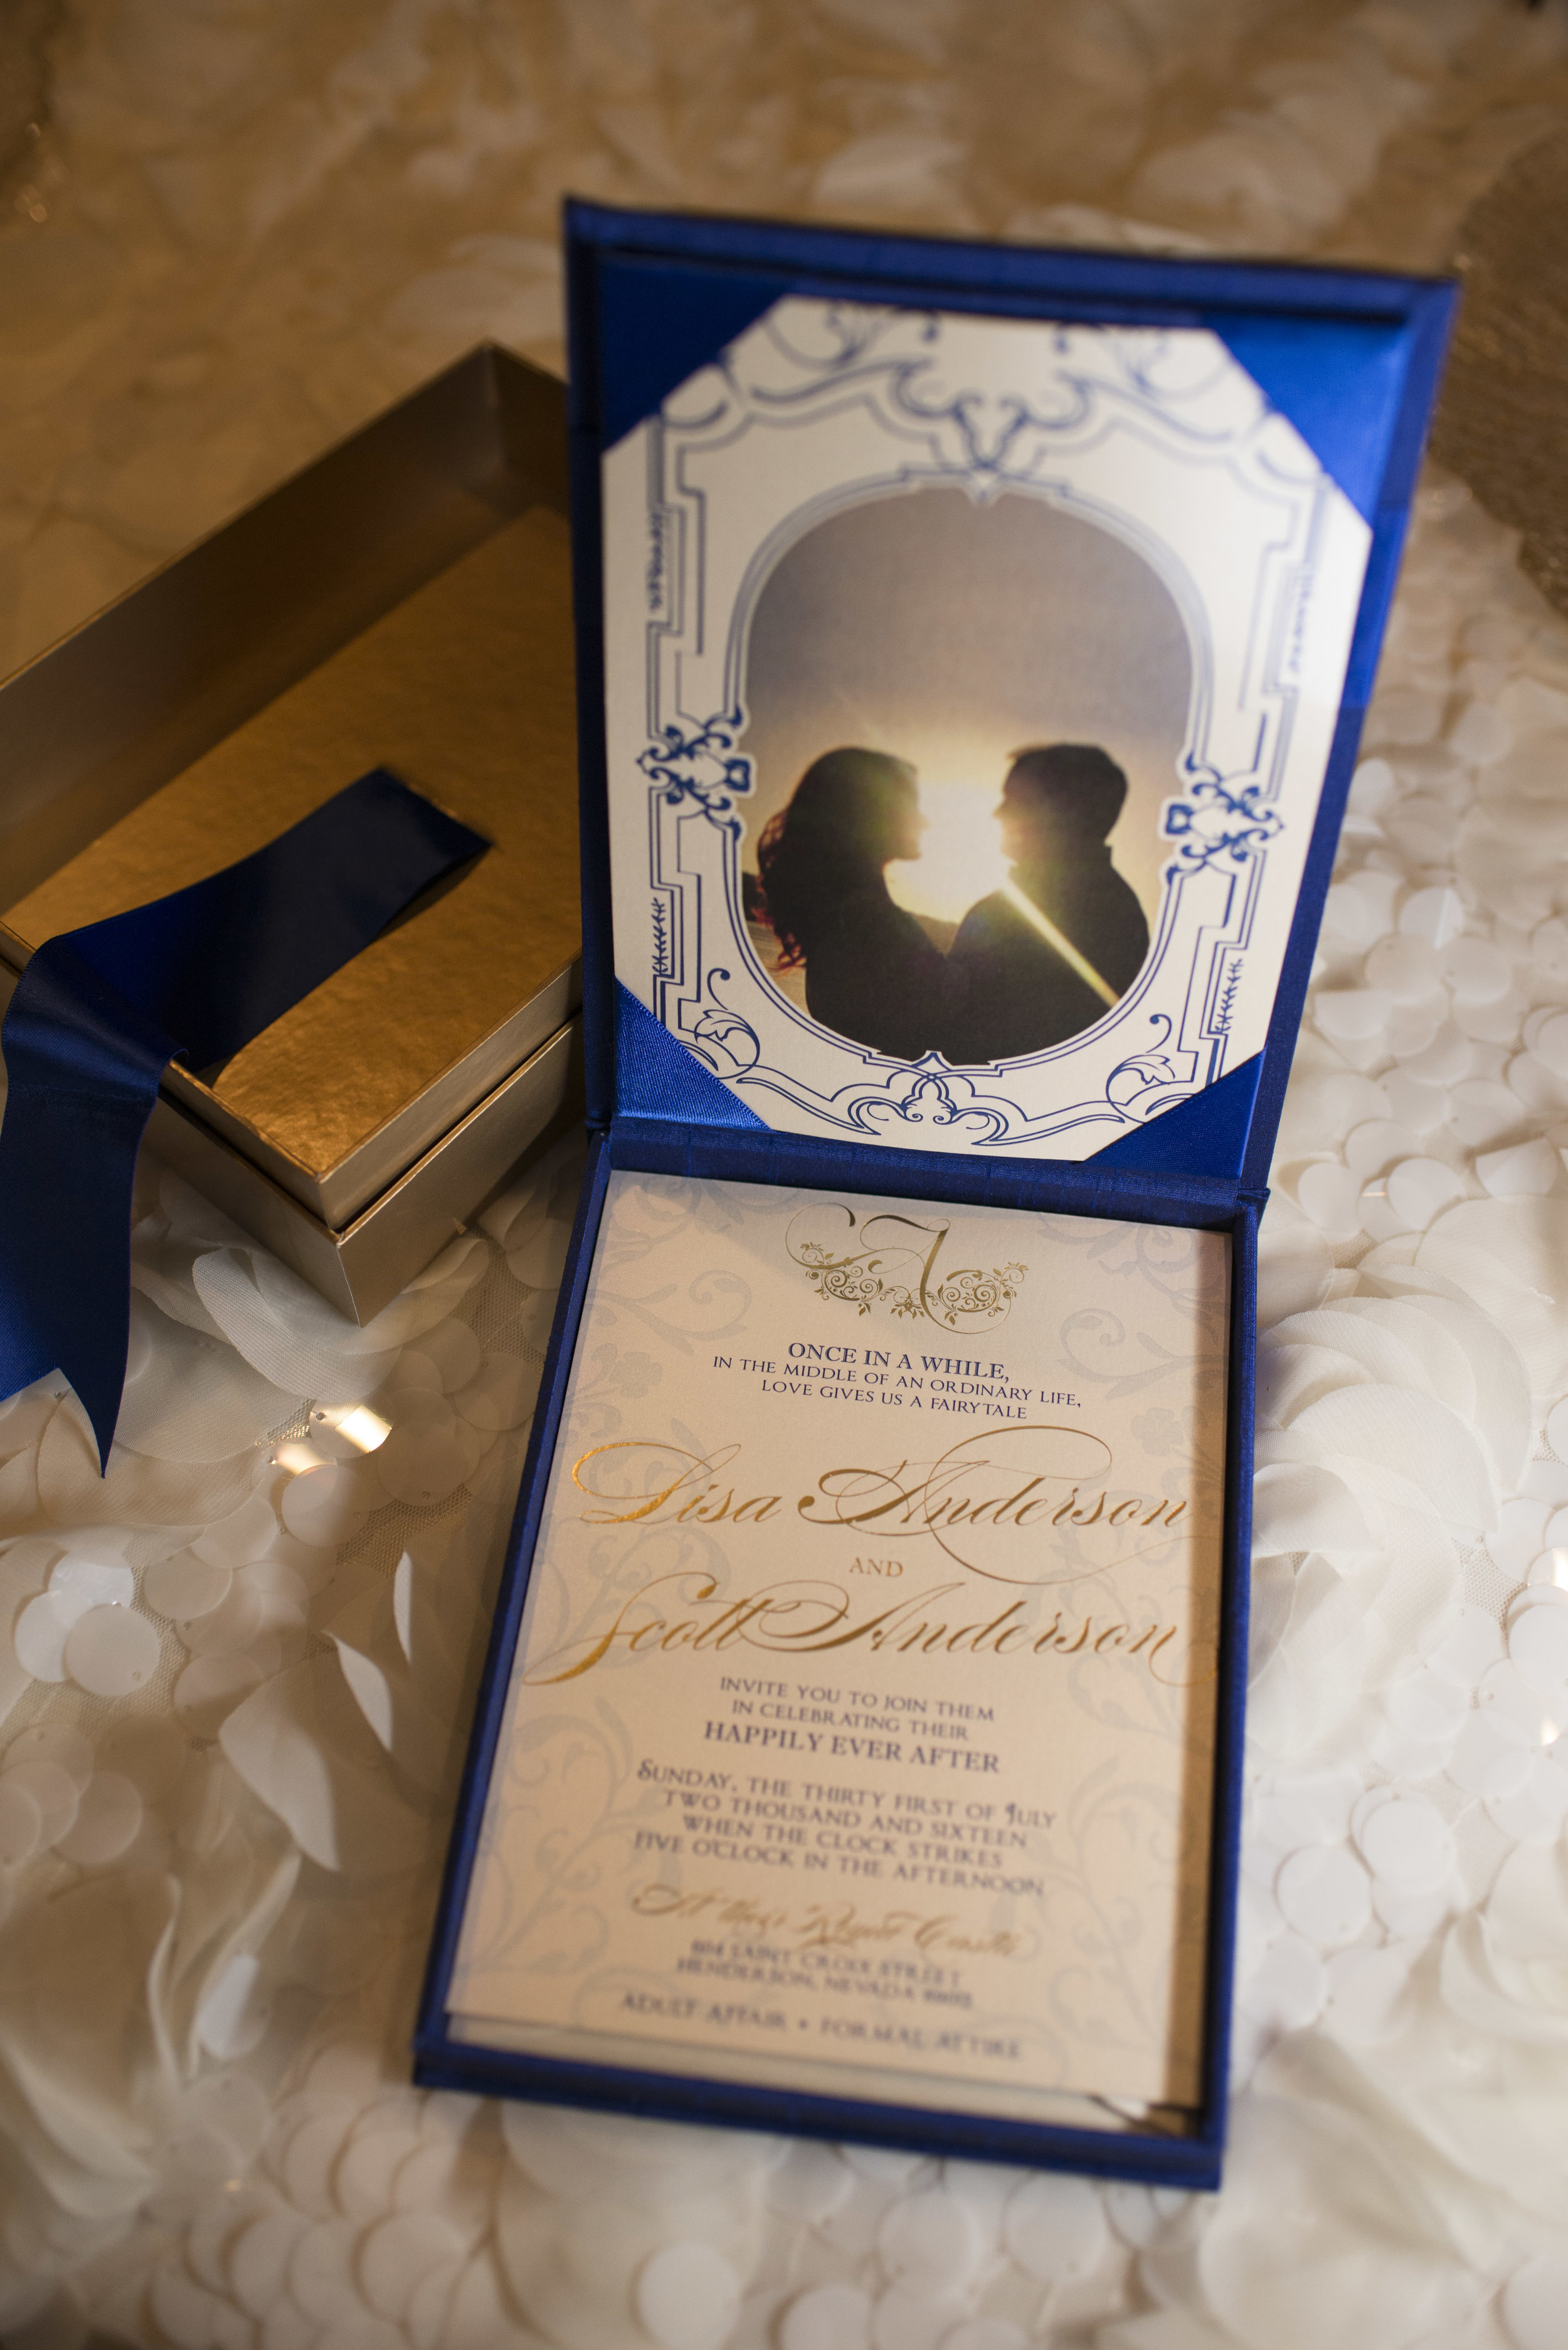 Boxed invitation with photo of the bride and groom by Paper and Home.Luxury Las Vegas Wedding Planner Andrea Eppolito. Image by AltF Photography.